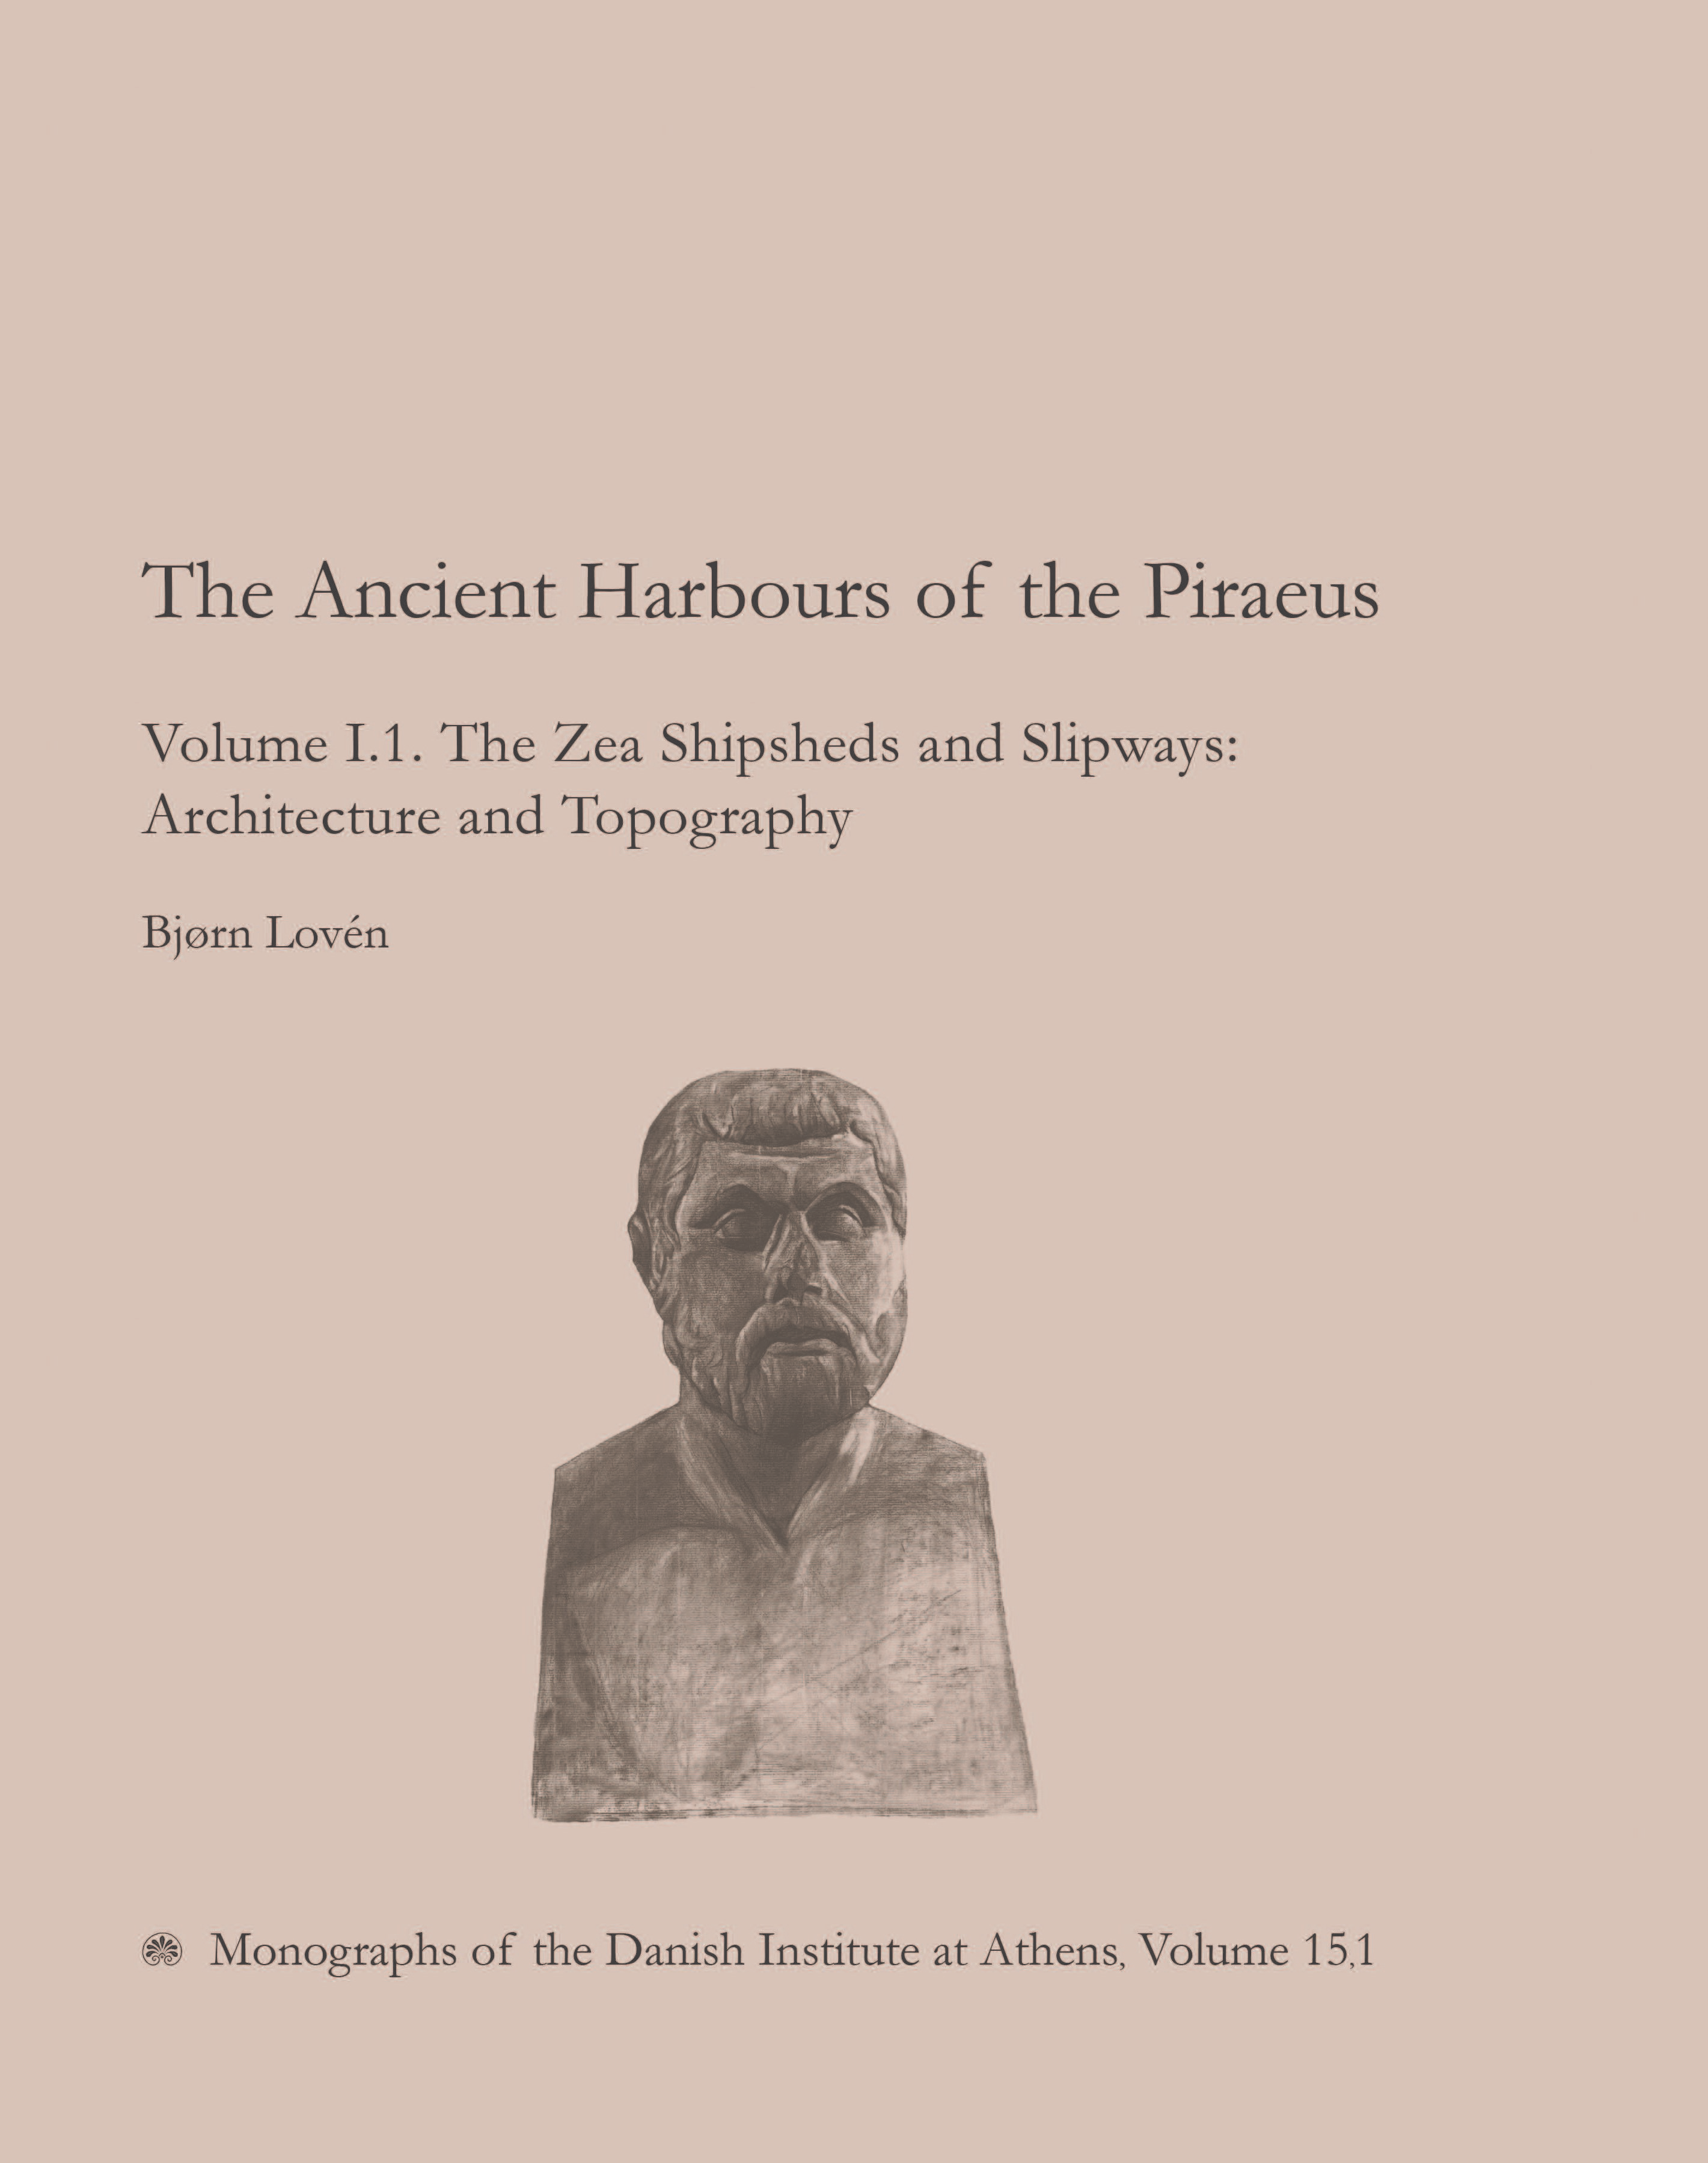 View Vol. 15 No. 1 (2011): The Ancient Harbours of the Piraeus. Volume I.1. The Zea Shipsheds and Slipways: Architecture and Topography